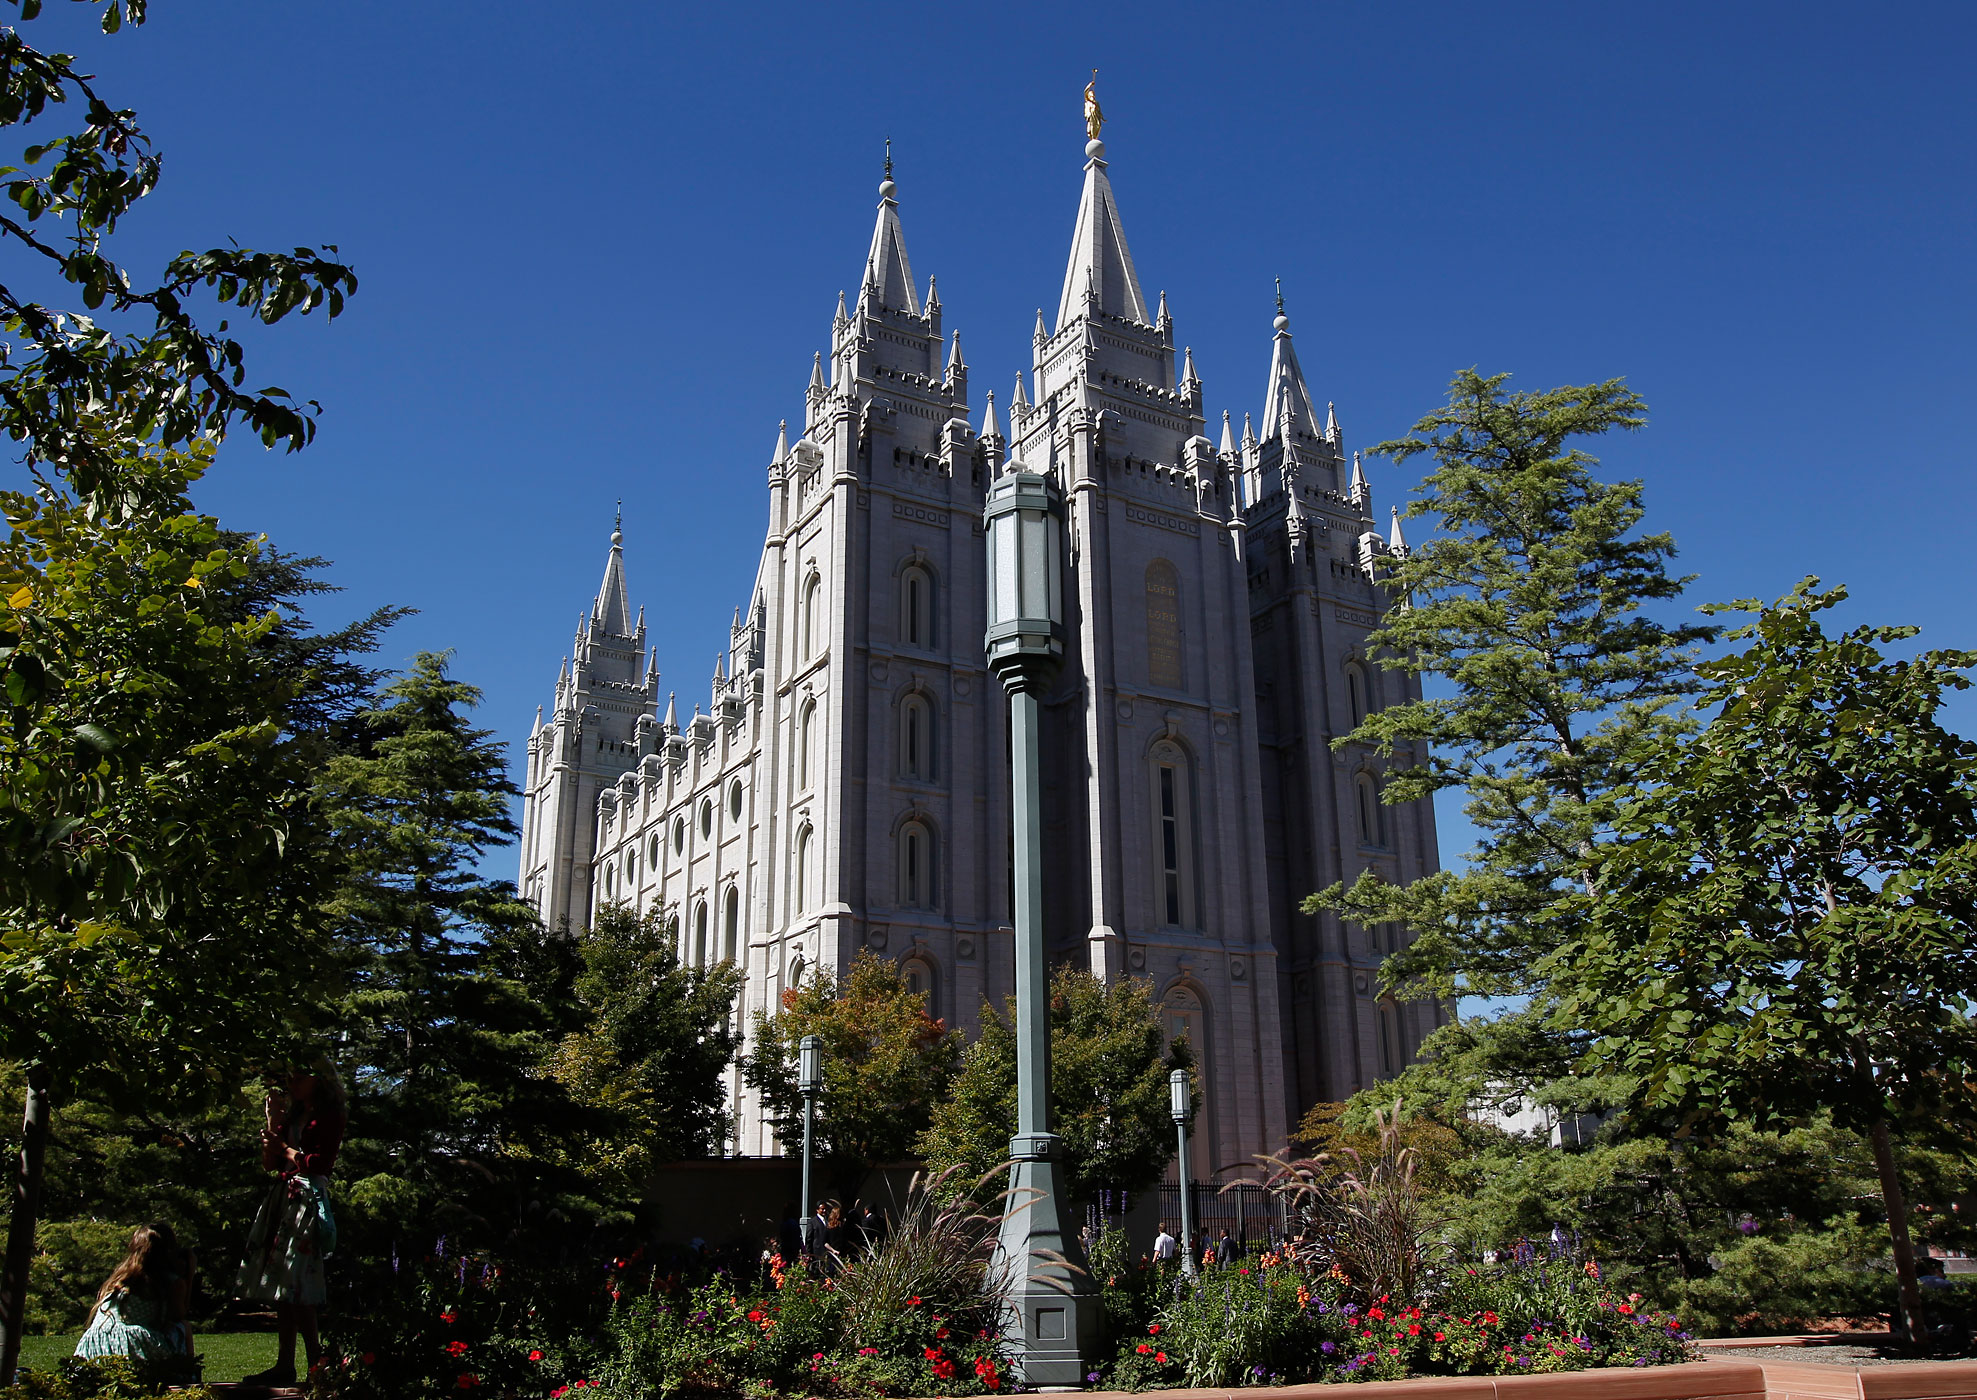 The Salt Lake Temple is seen during the 184th Semiannual General Conference of the Church of Jesus Christ of Latter-Day Saints on Oct. 4, 2014 in Salt Lake City, Utah.